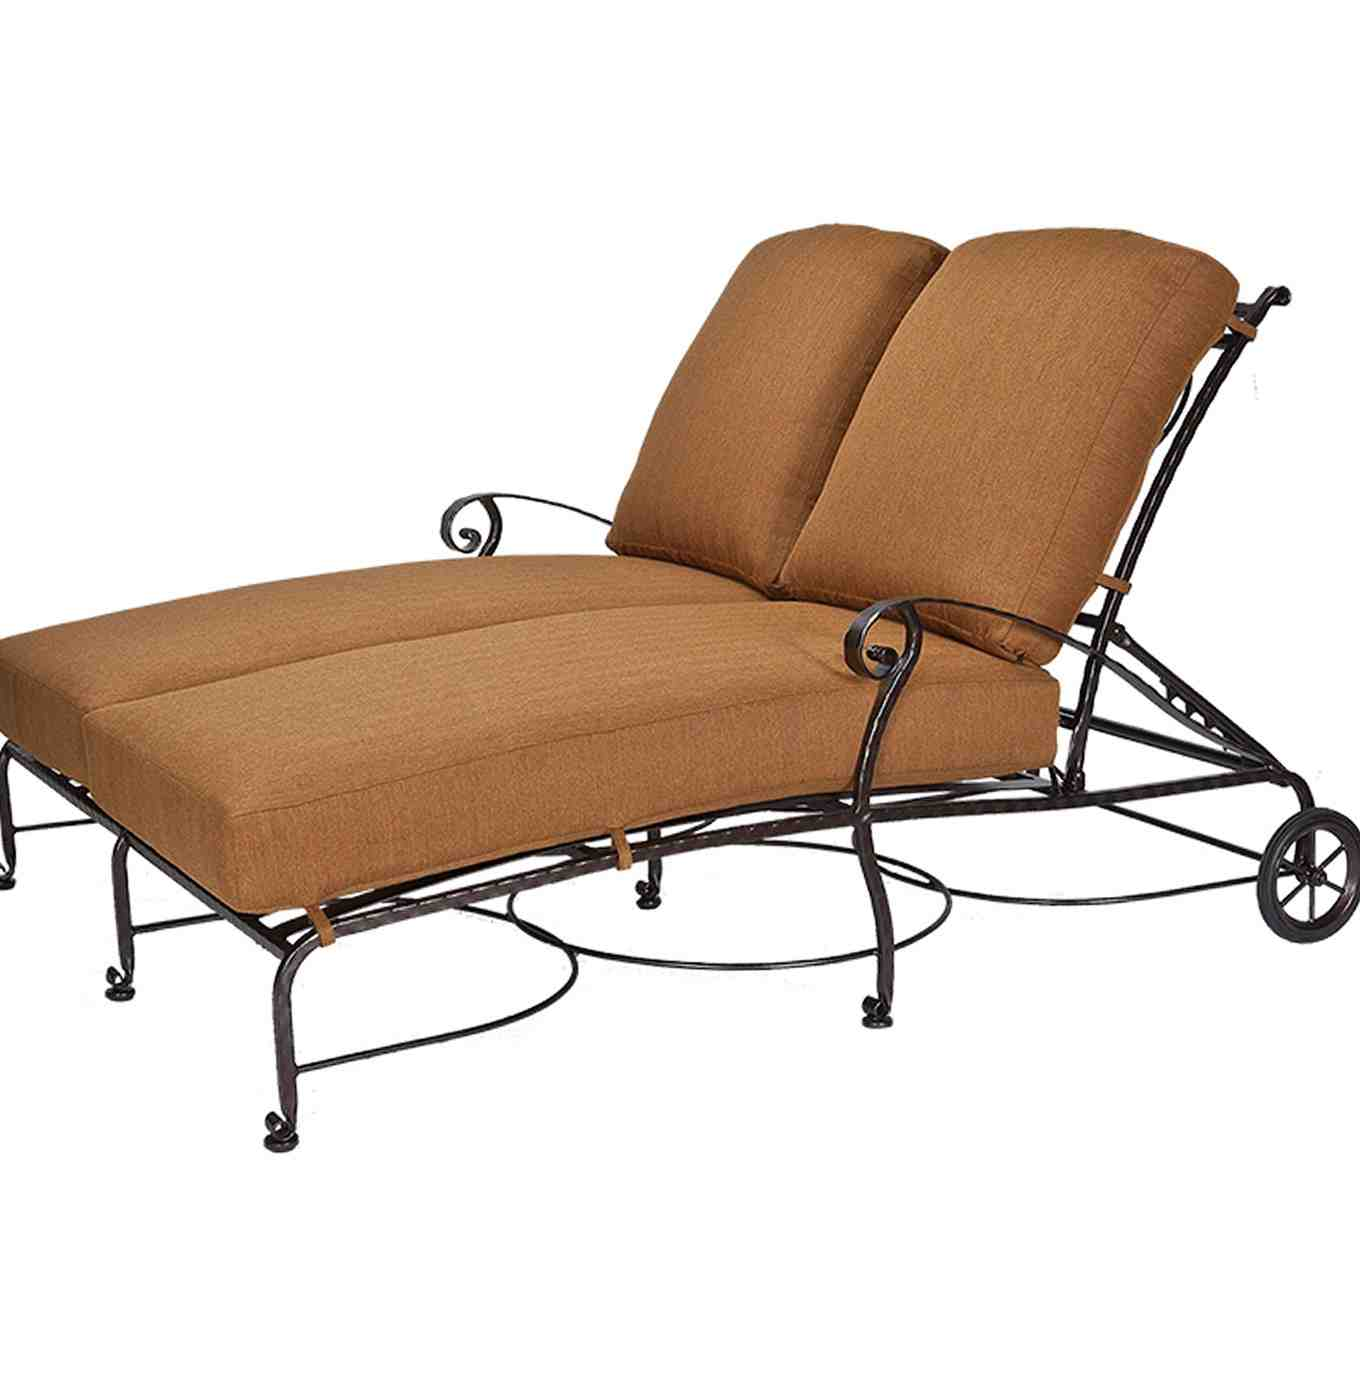 double lounge chair bedroom harvey norman chaise cover outdoor furniture home